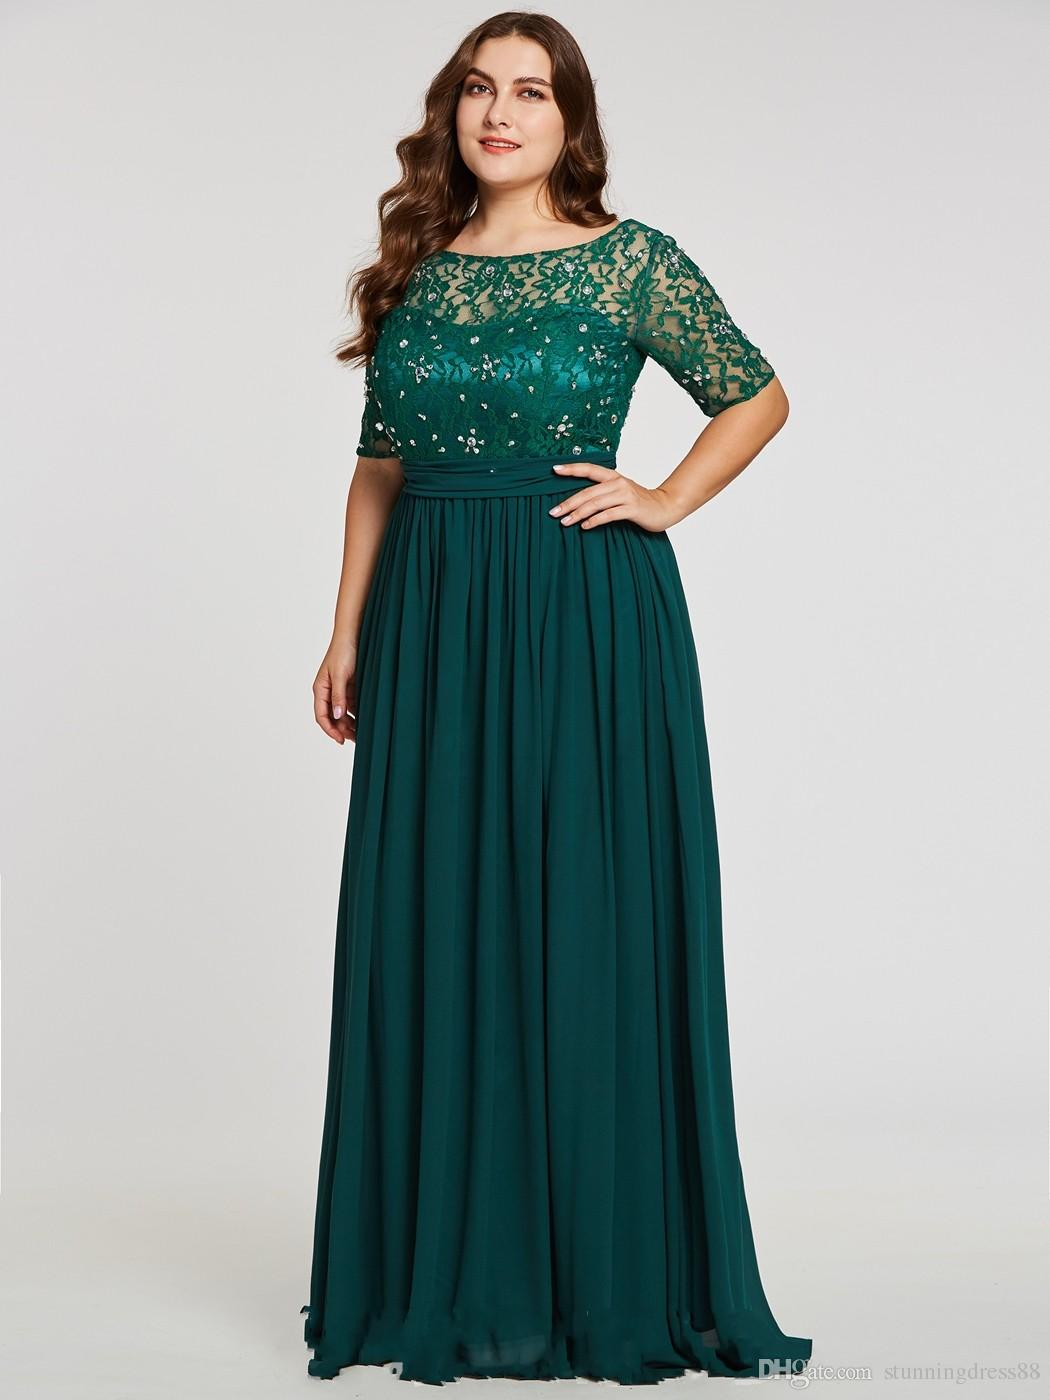 Teal Plus Size Lace Chiffon Bridesmaid Dresses Long Cheap Designer Jewel  Sheer Neck Short Sleeves Sequin Beaded Formal Evening Gowns Short  Bridesmaid ...